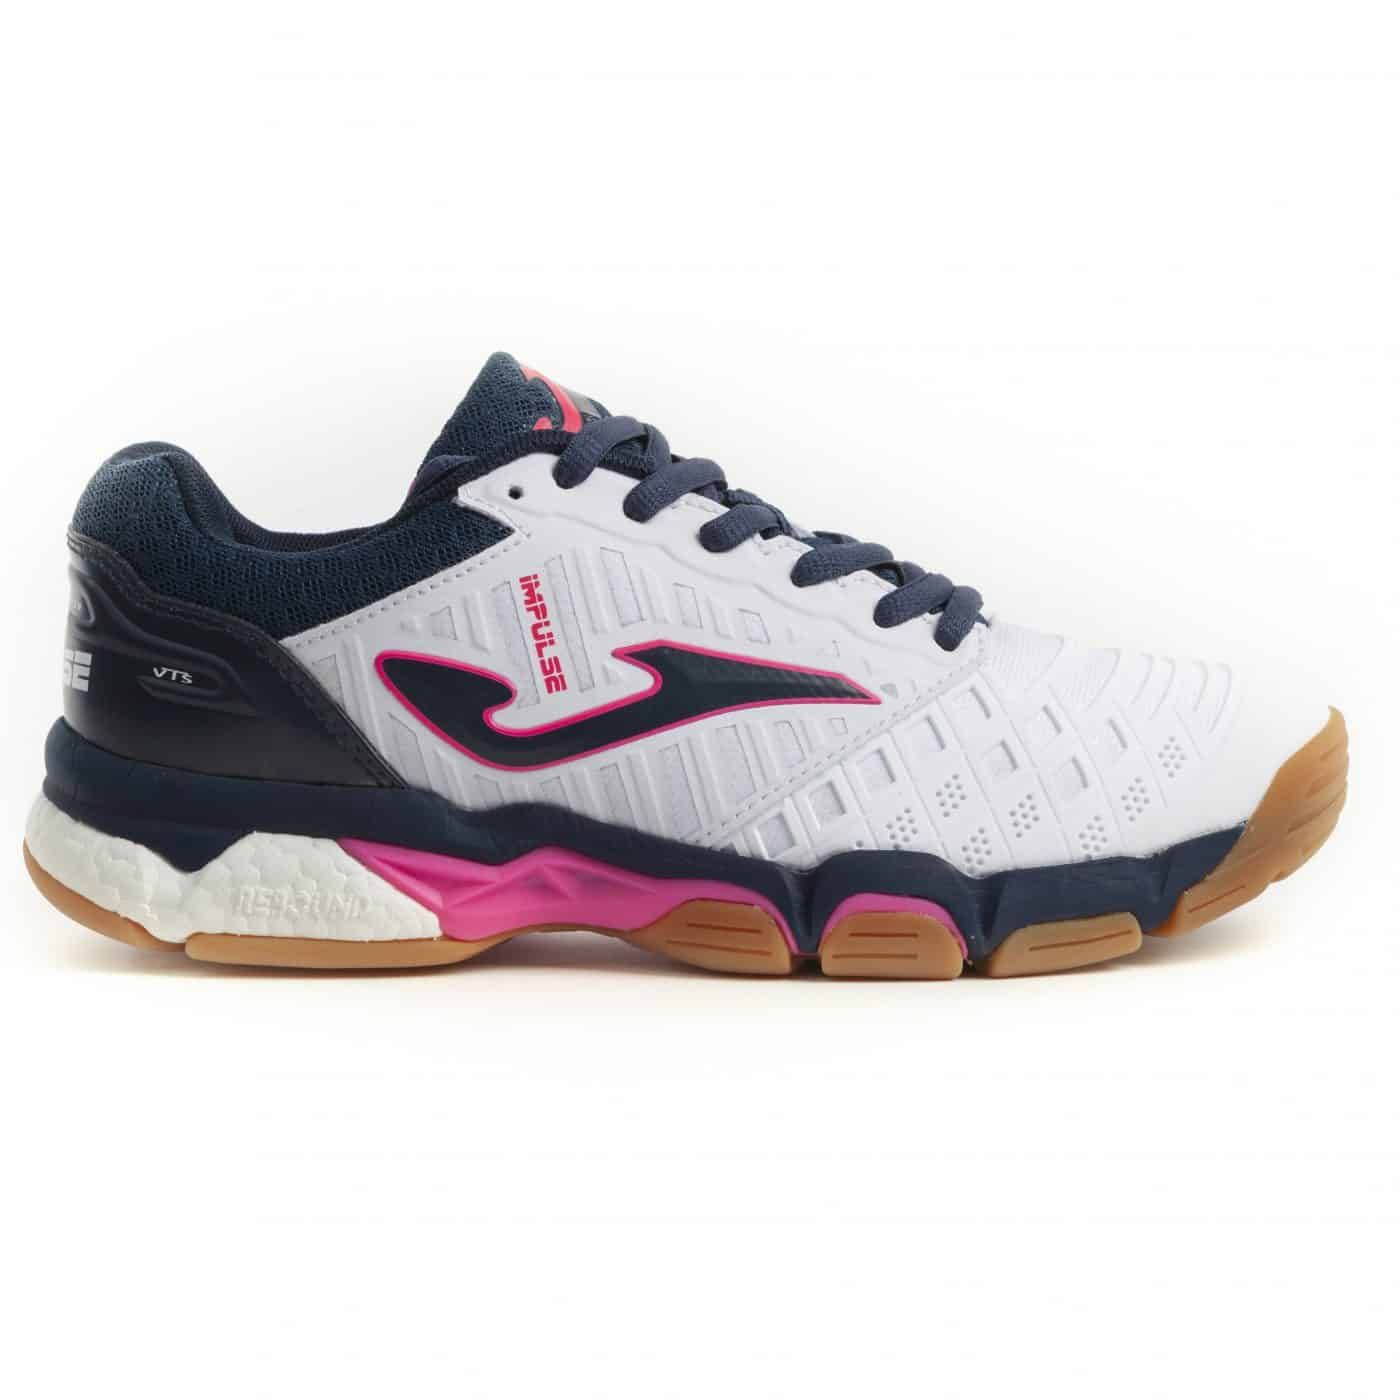 joma-v-impulsion-chaussure-volley-volleypack-2019-5